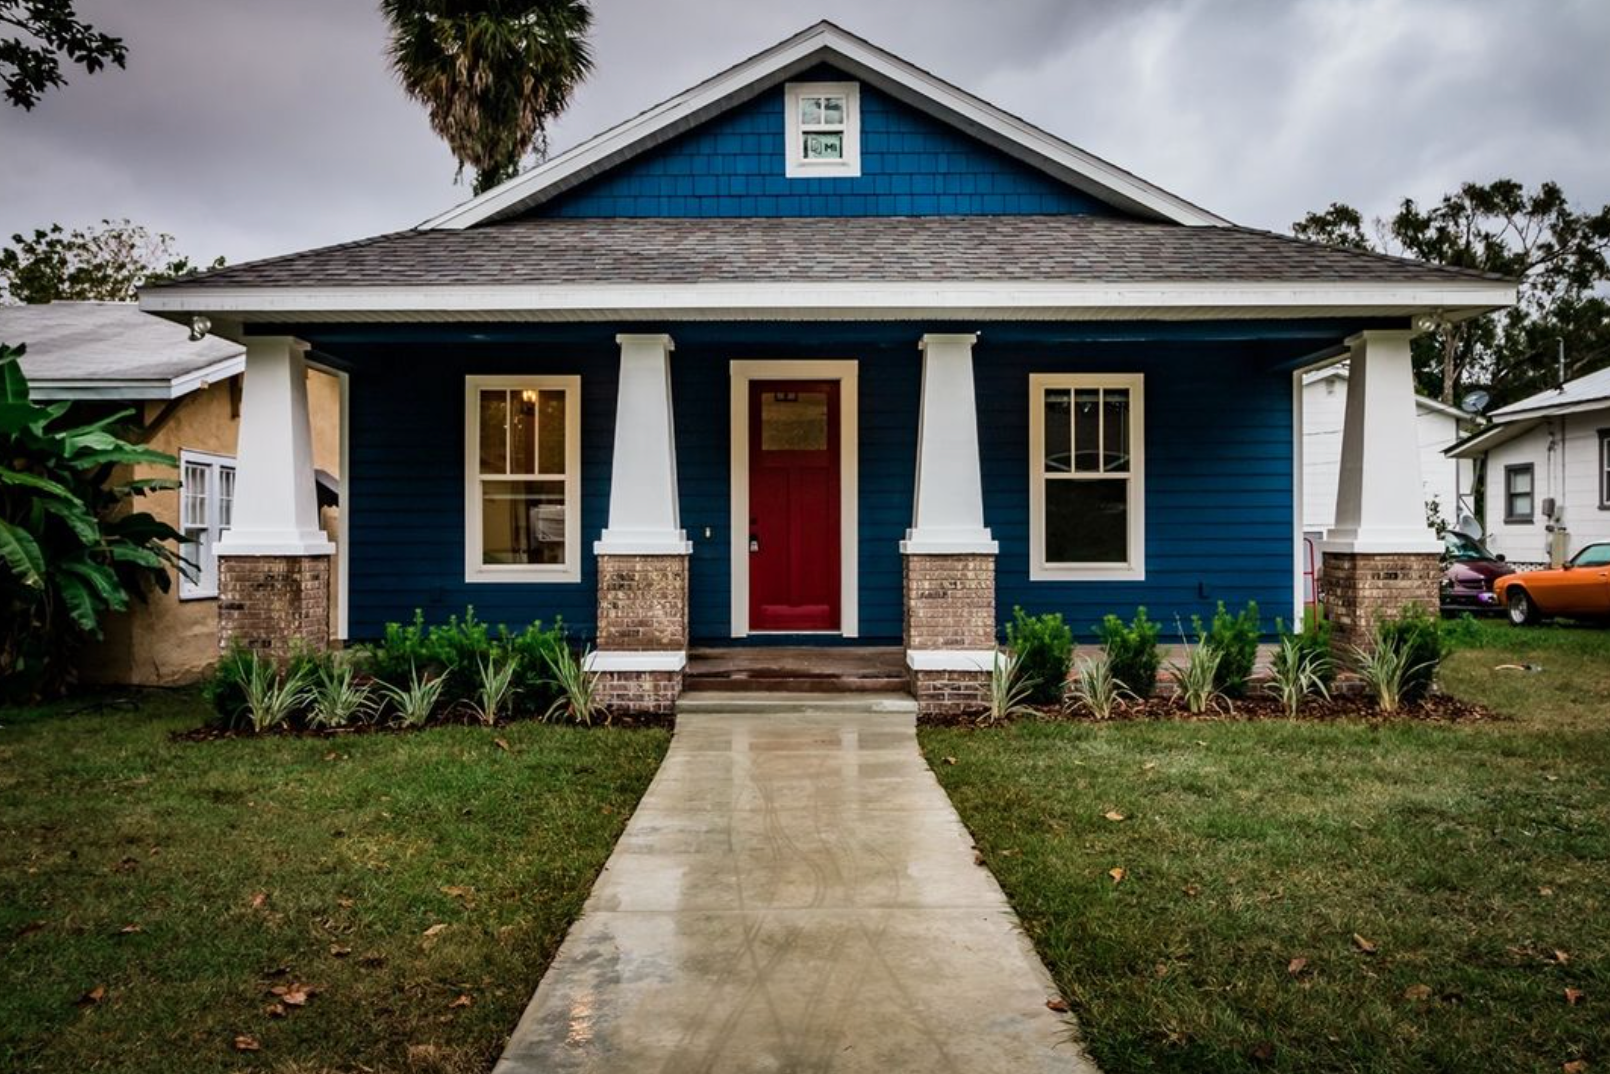 Exterior of a blue house in Lakeland